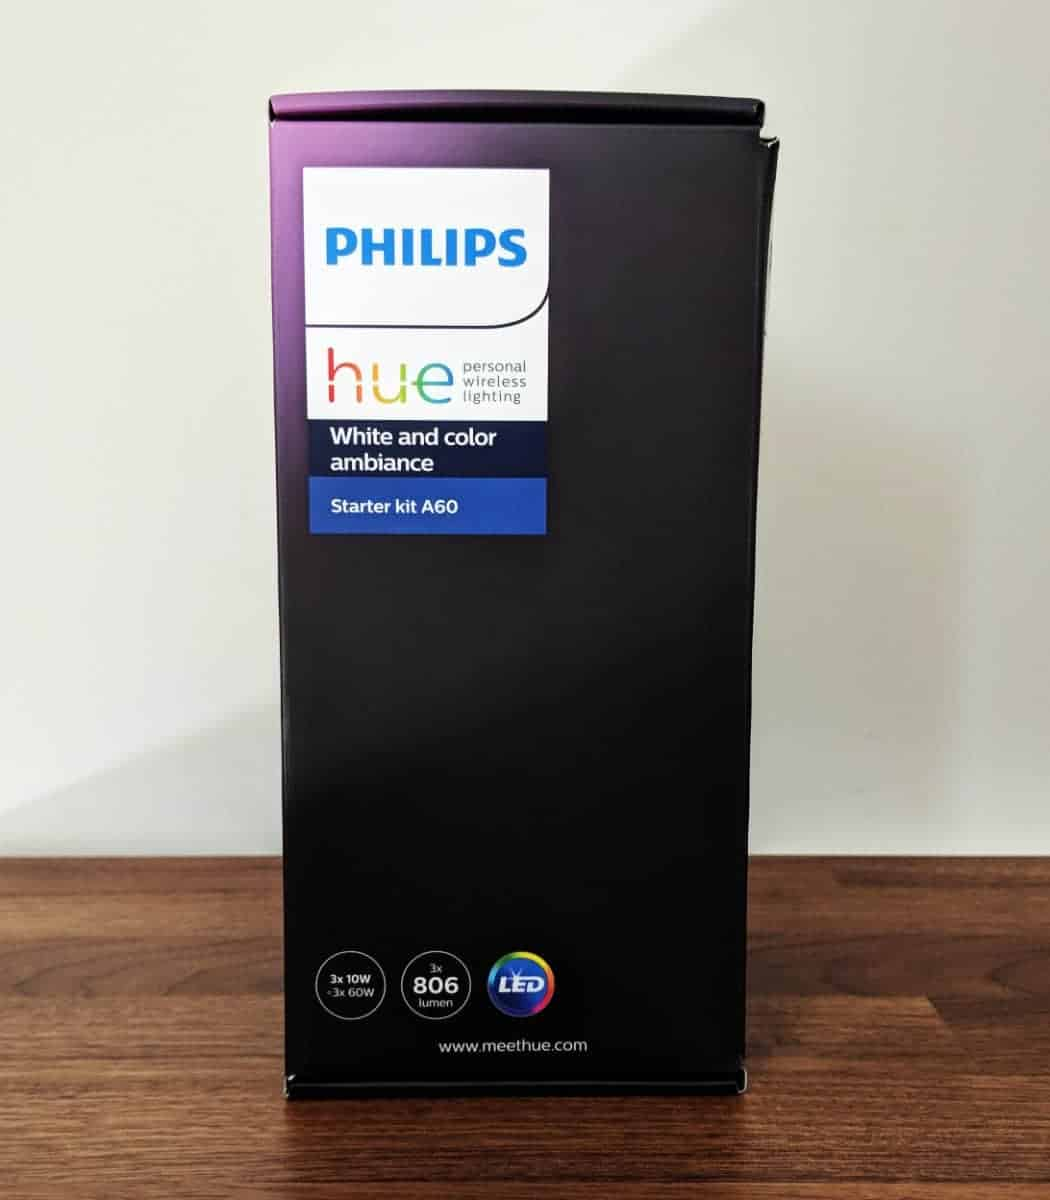 Philips-Hue-Starter-kit-Photos-04 Philips Hue Smart Lighting Review